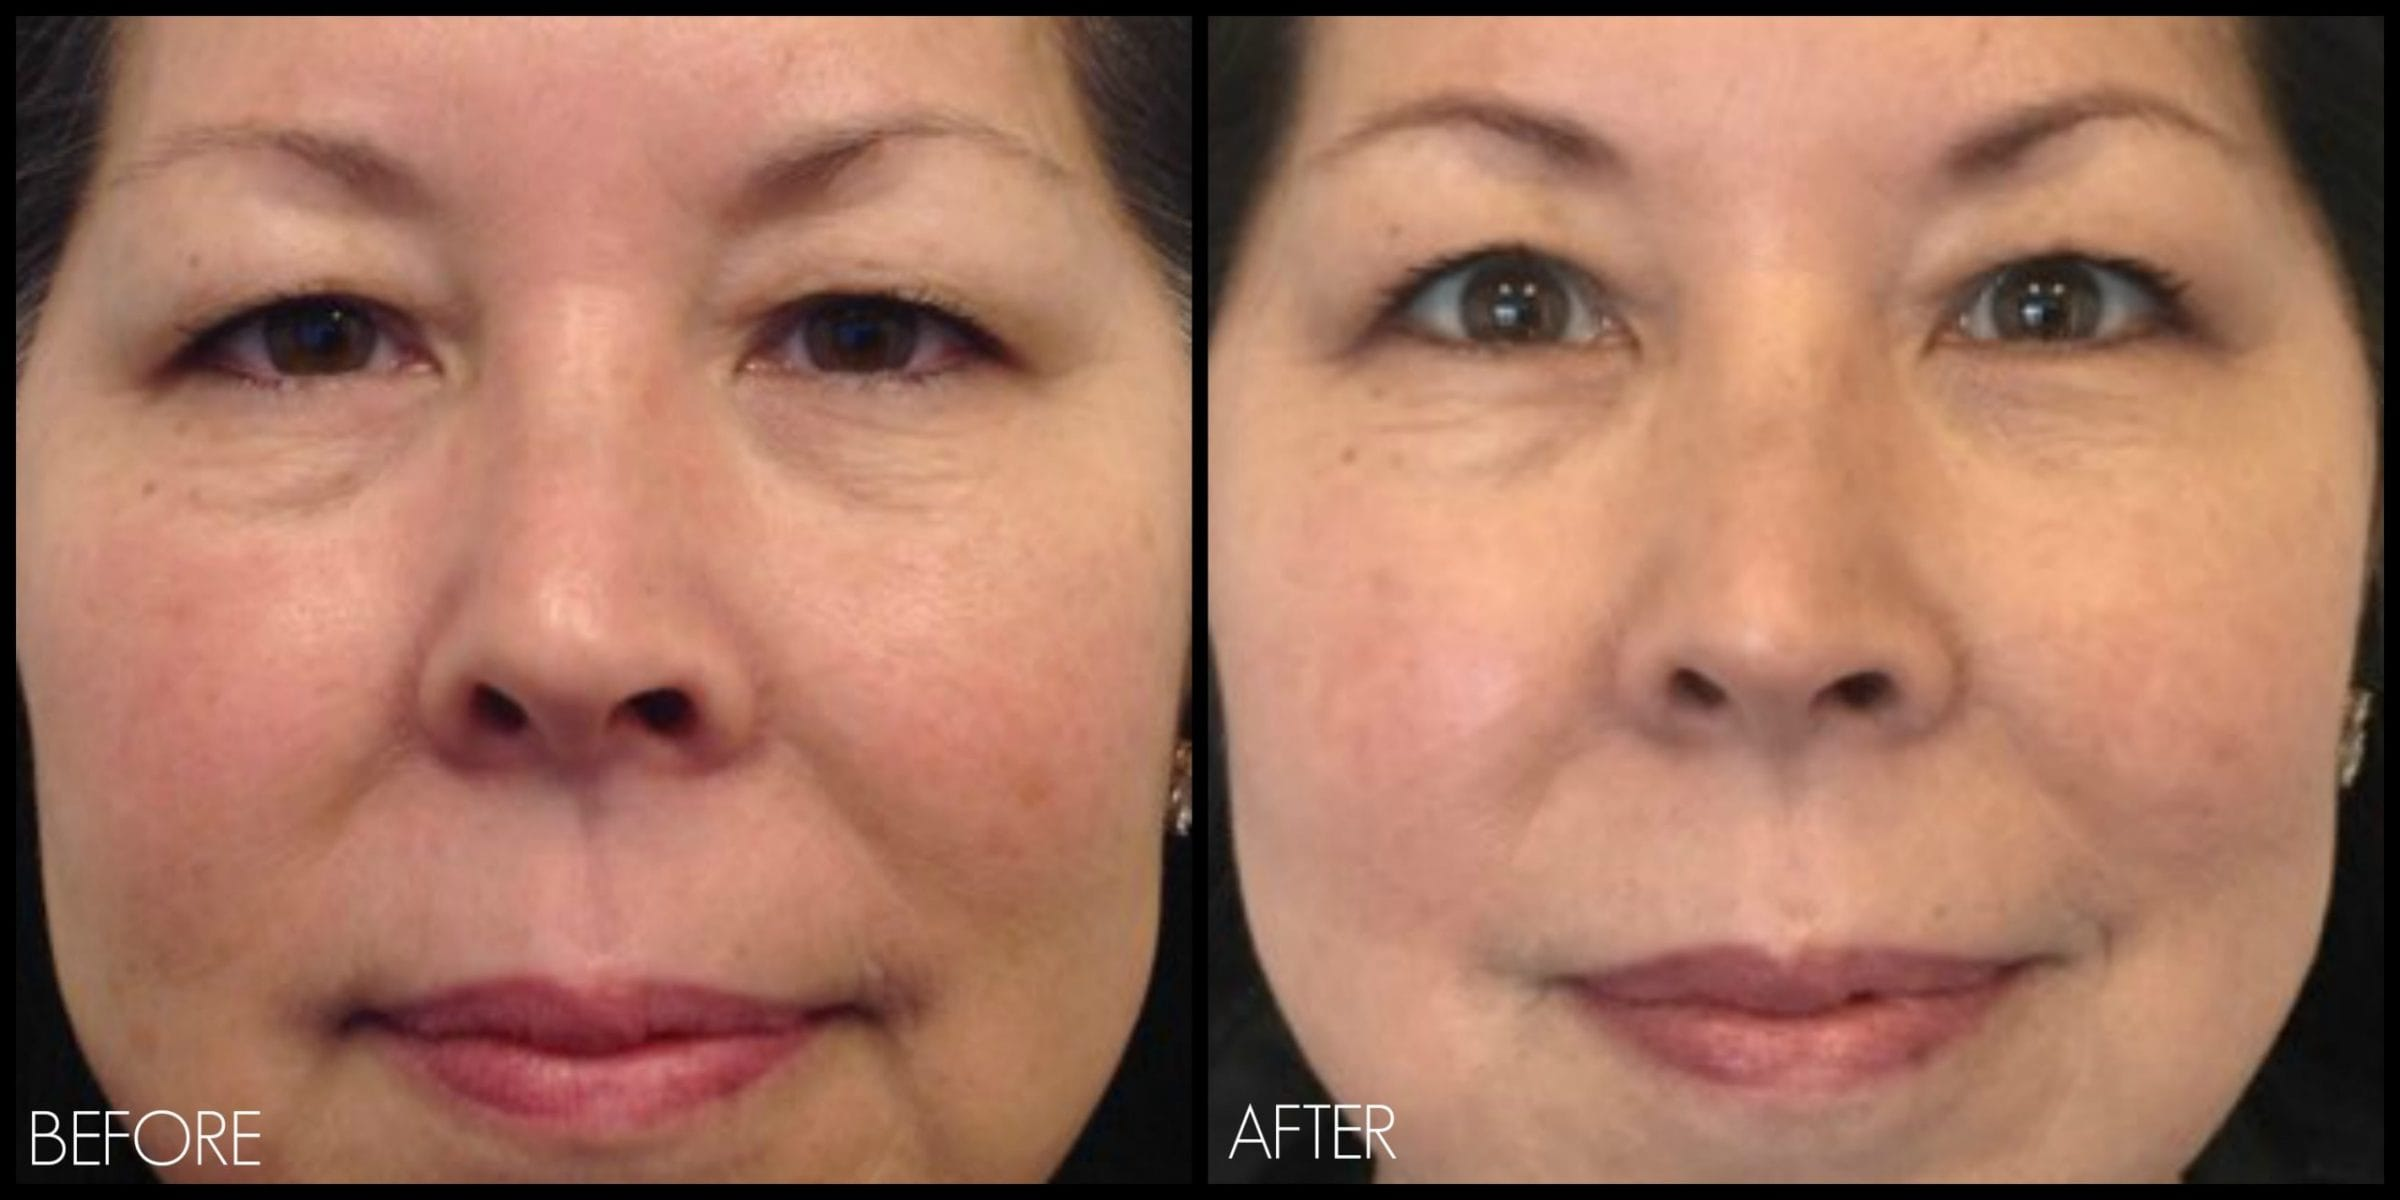 Ultherapy Eye Special: The Treatment You've Been Waiting For!